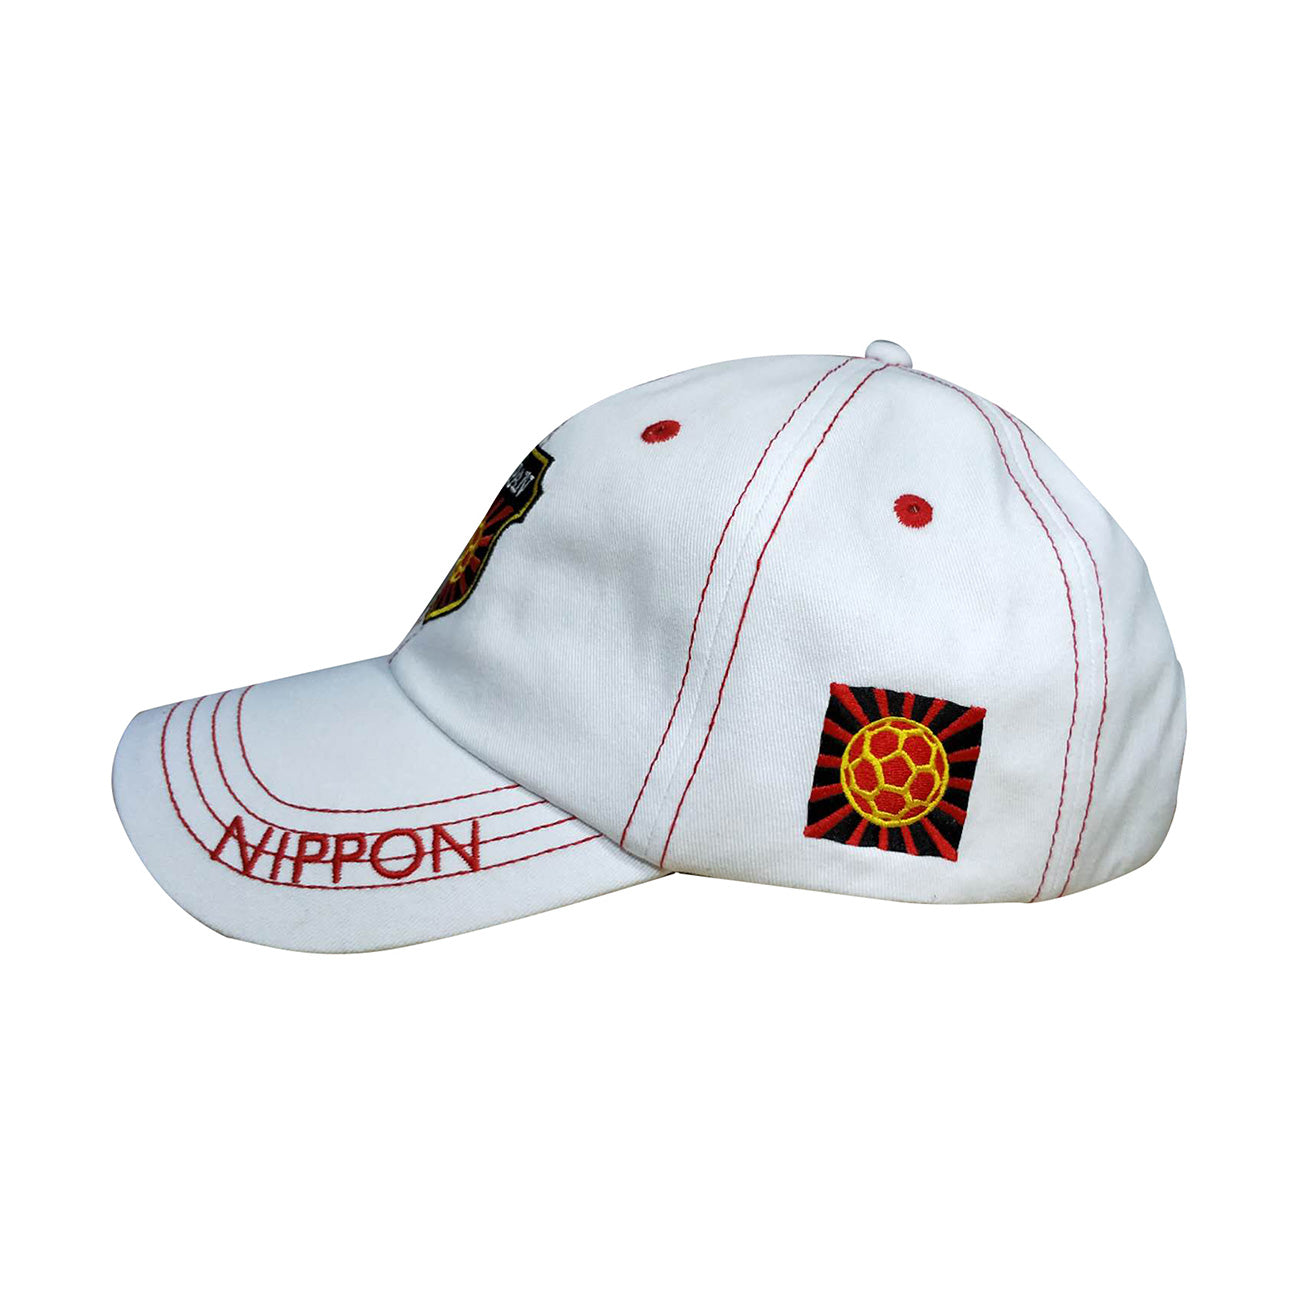 Japan World Cup Dads Cap White